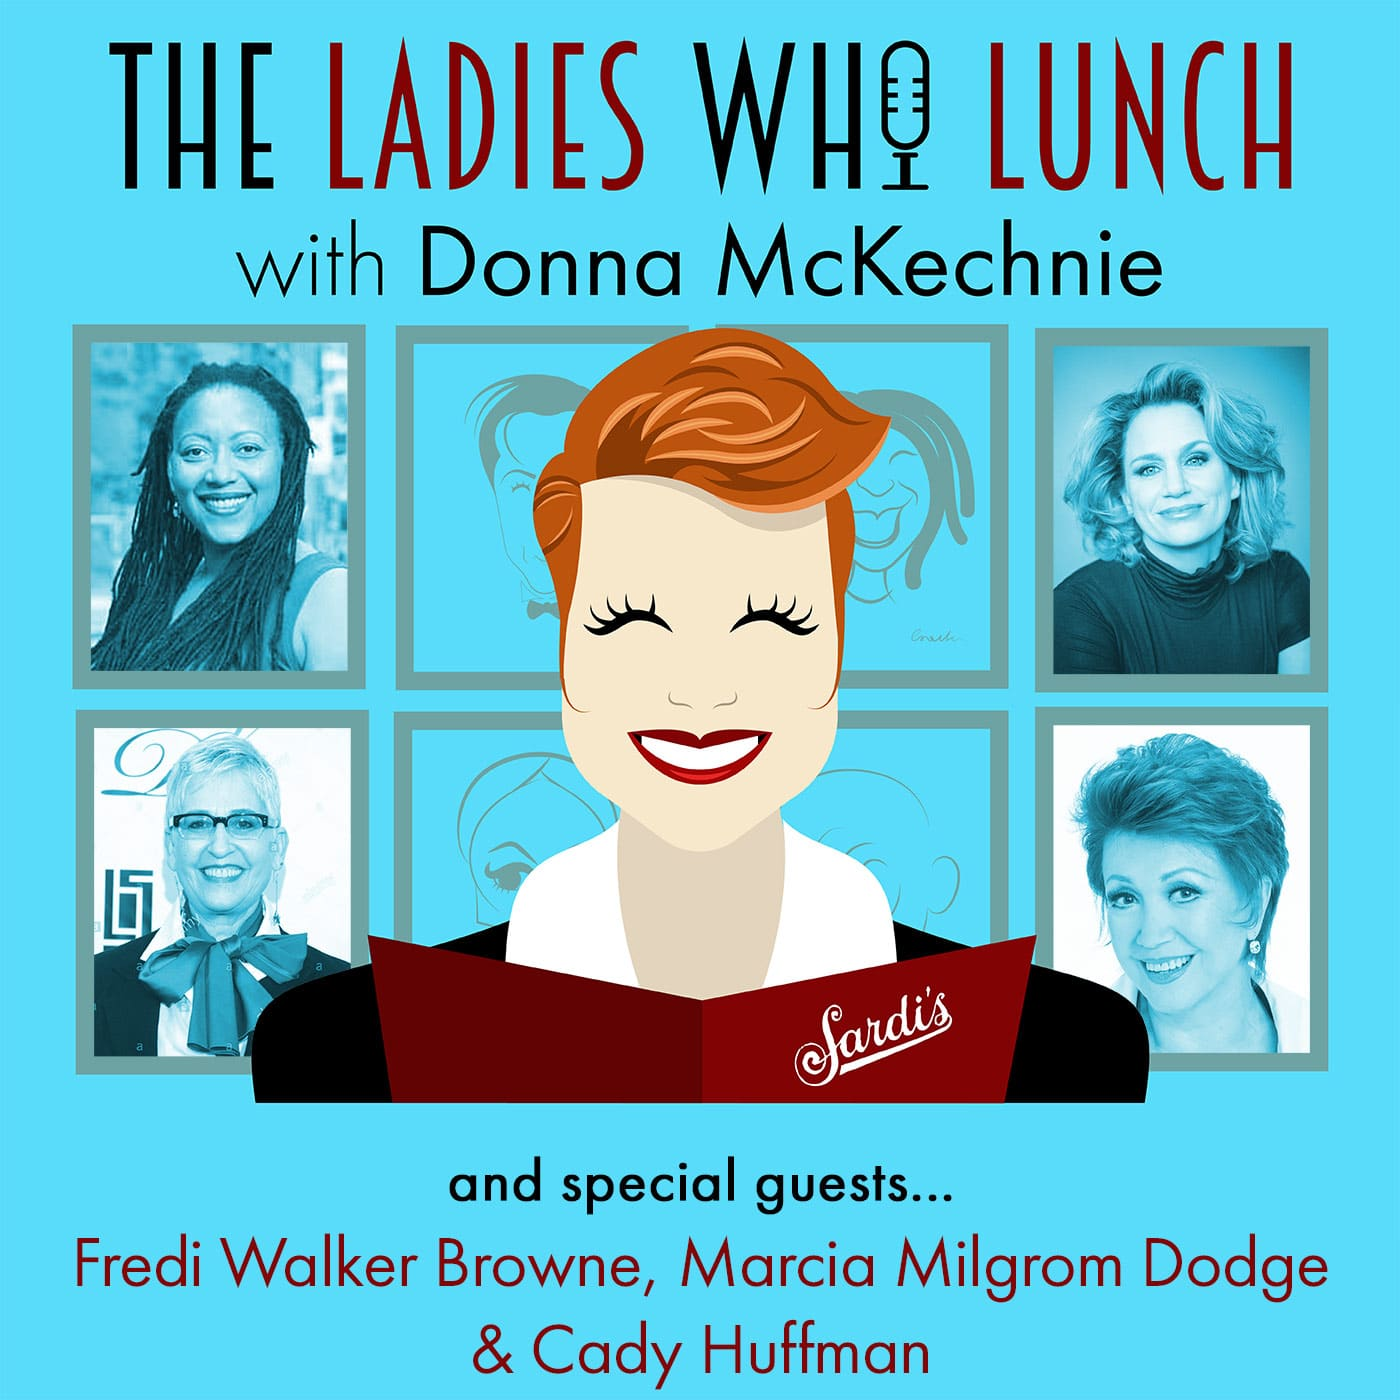 The Ladies Who Lunch with Donna McKechnie Episode 2 Fredi Walker-Browne, Marcia Milgrom Dodge & Cady Huffman